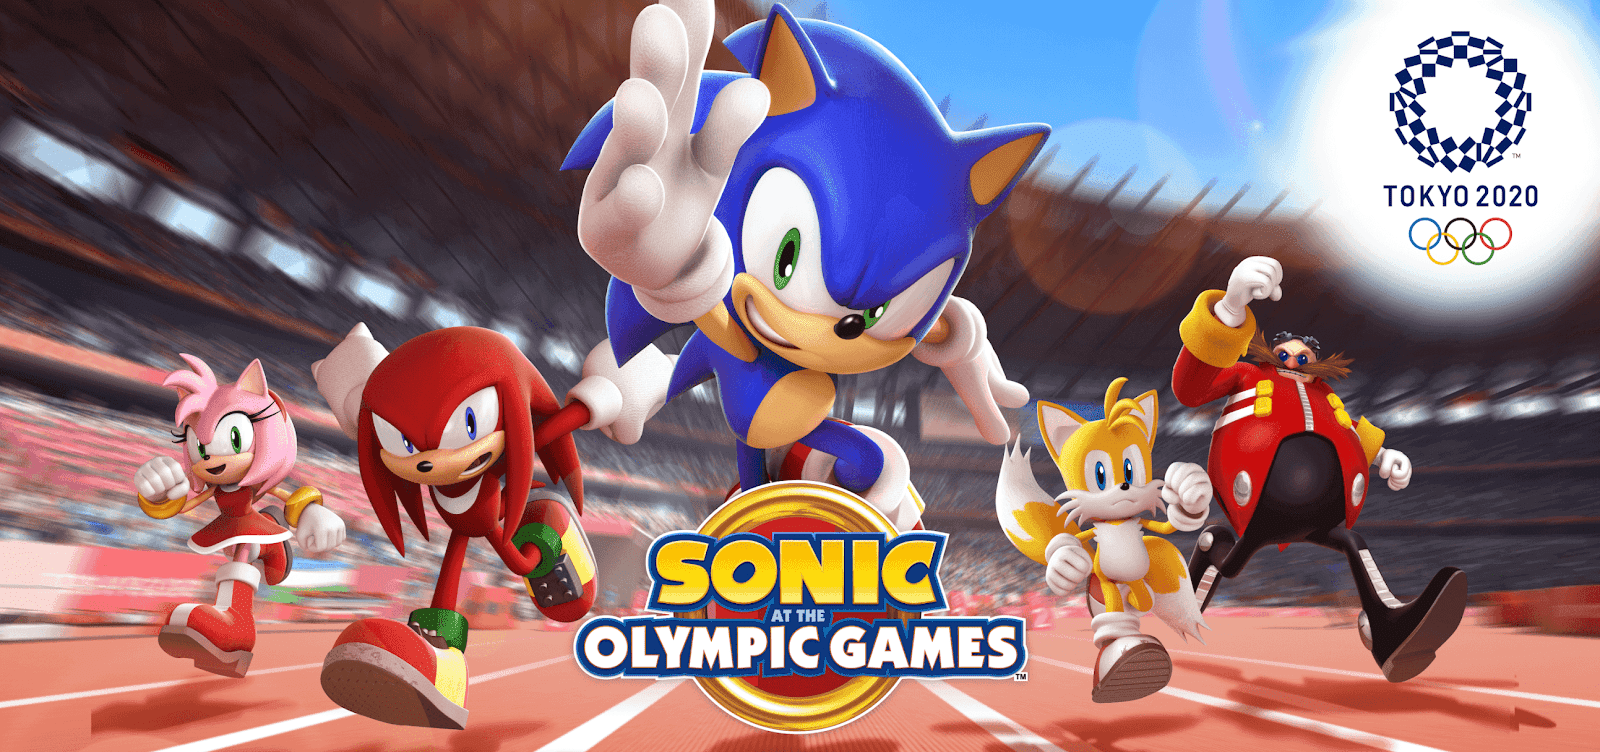 Sonic at the Olympic Games Tokyo 2020 Finally out Worldwide